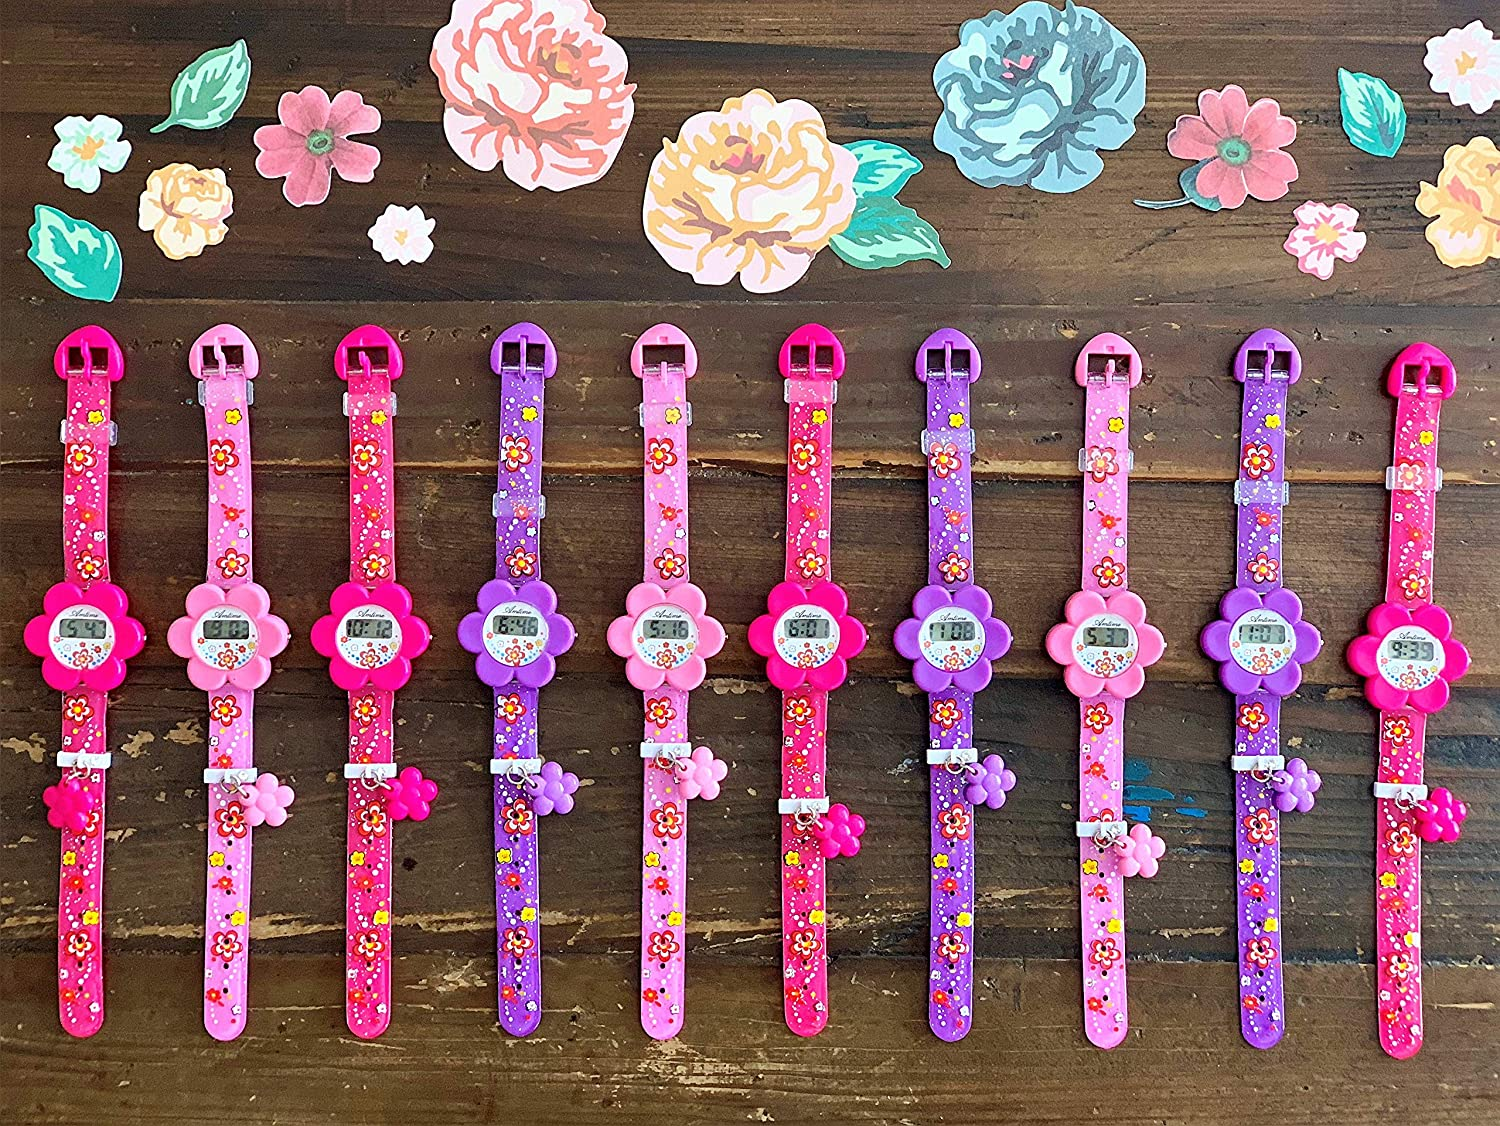 Party Favor for Kids! 10 Watches for Kids in Different Assortment for Boys and Girls. Great Bulk Price. Fun Party Favors for Little and Big Kids. The ONLY Kids Party Favor You Need! (10 Pack)